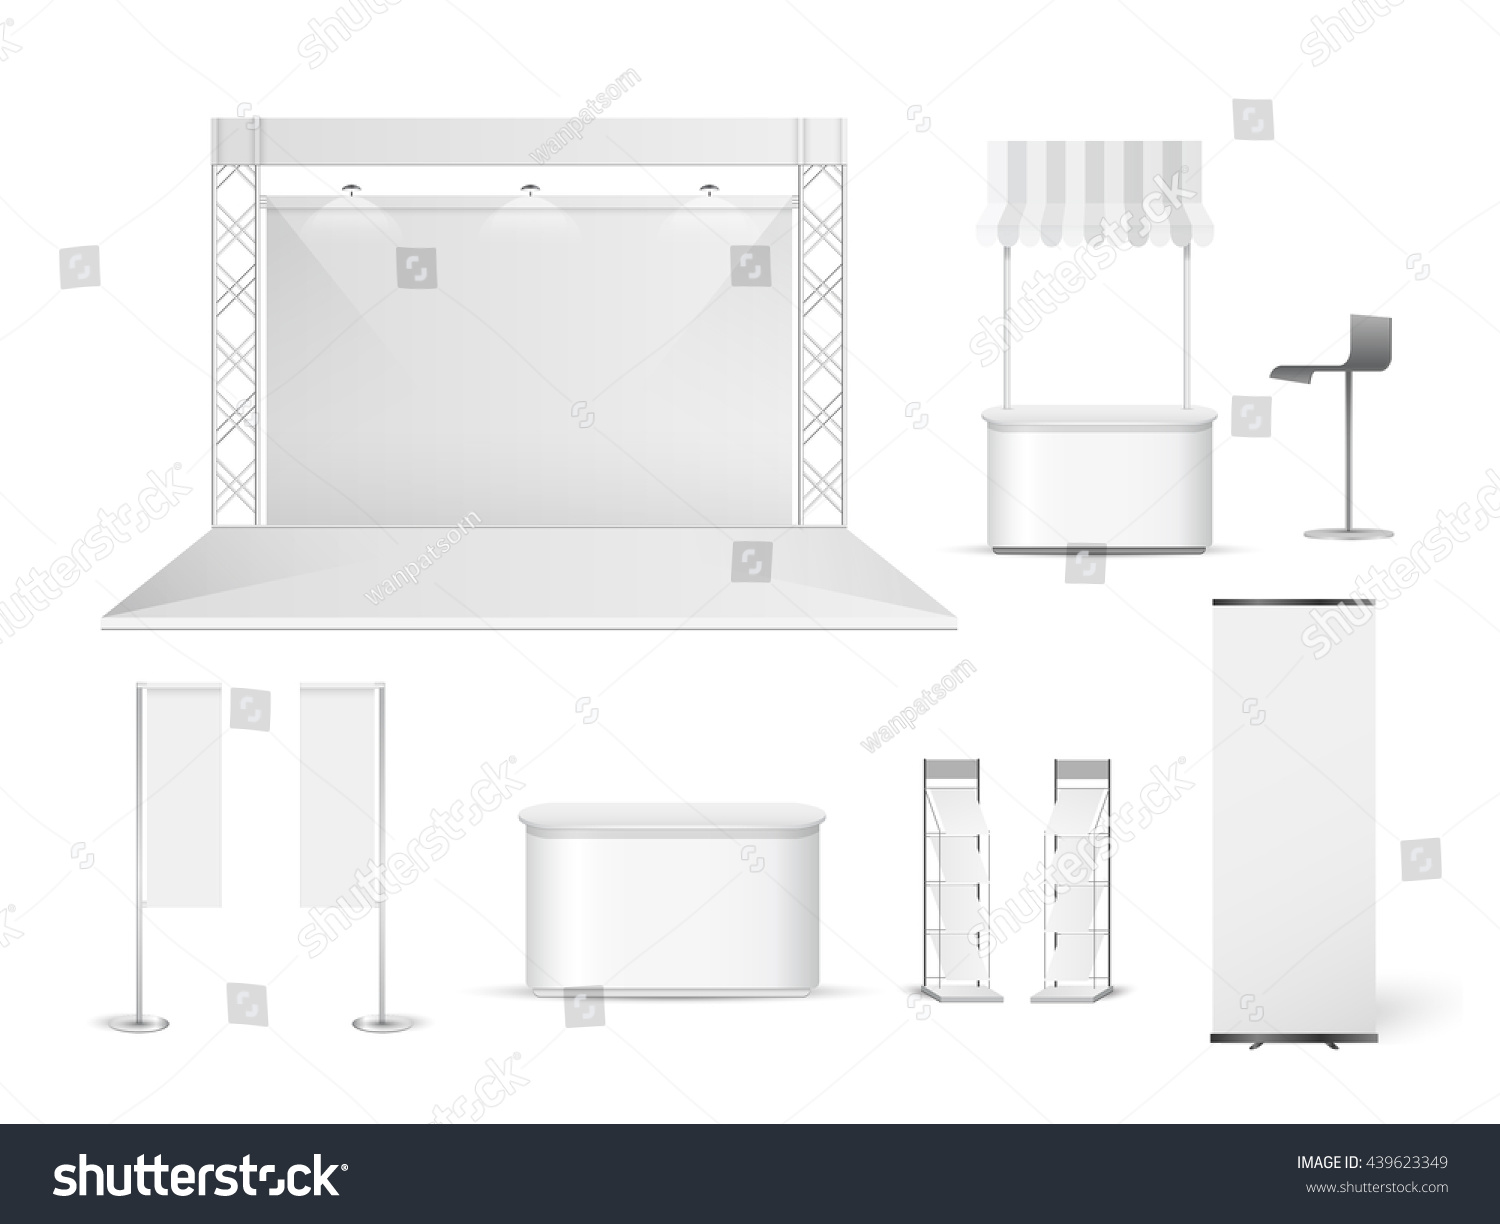 Simple Exhibition Stand Vector : White creative exhibition stand design booth stock vector